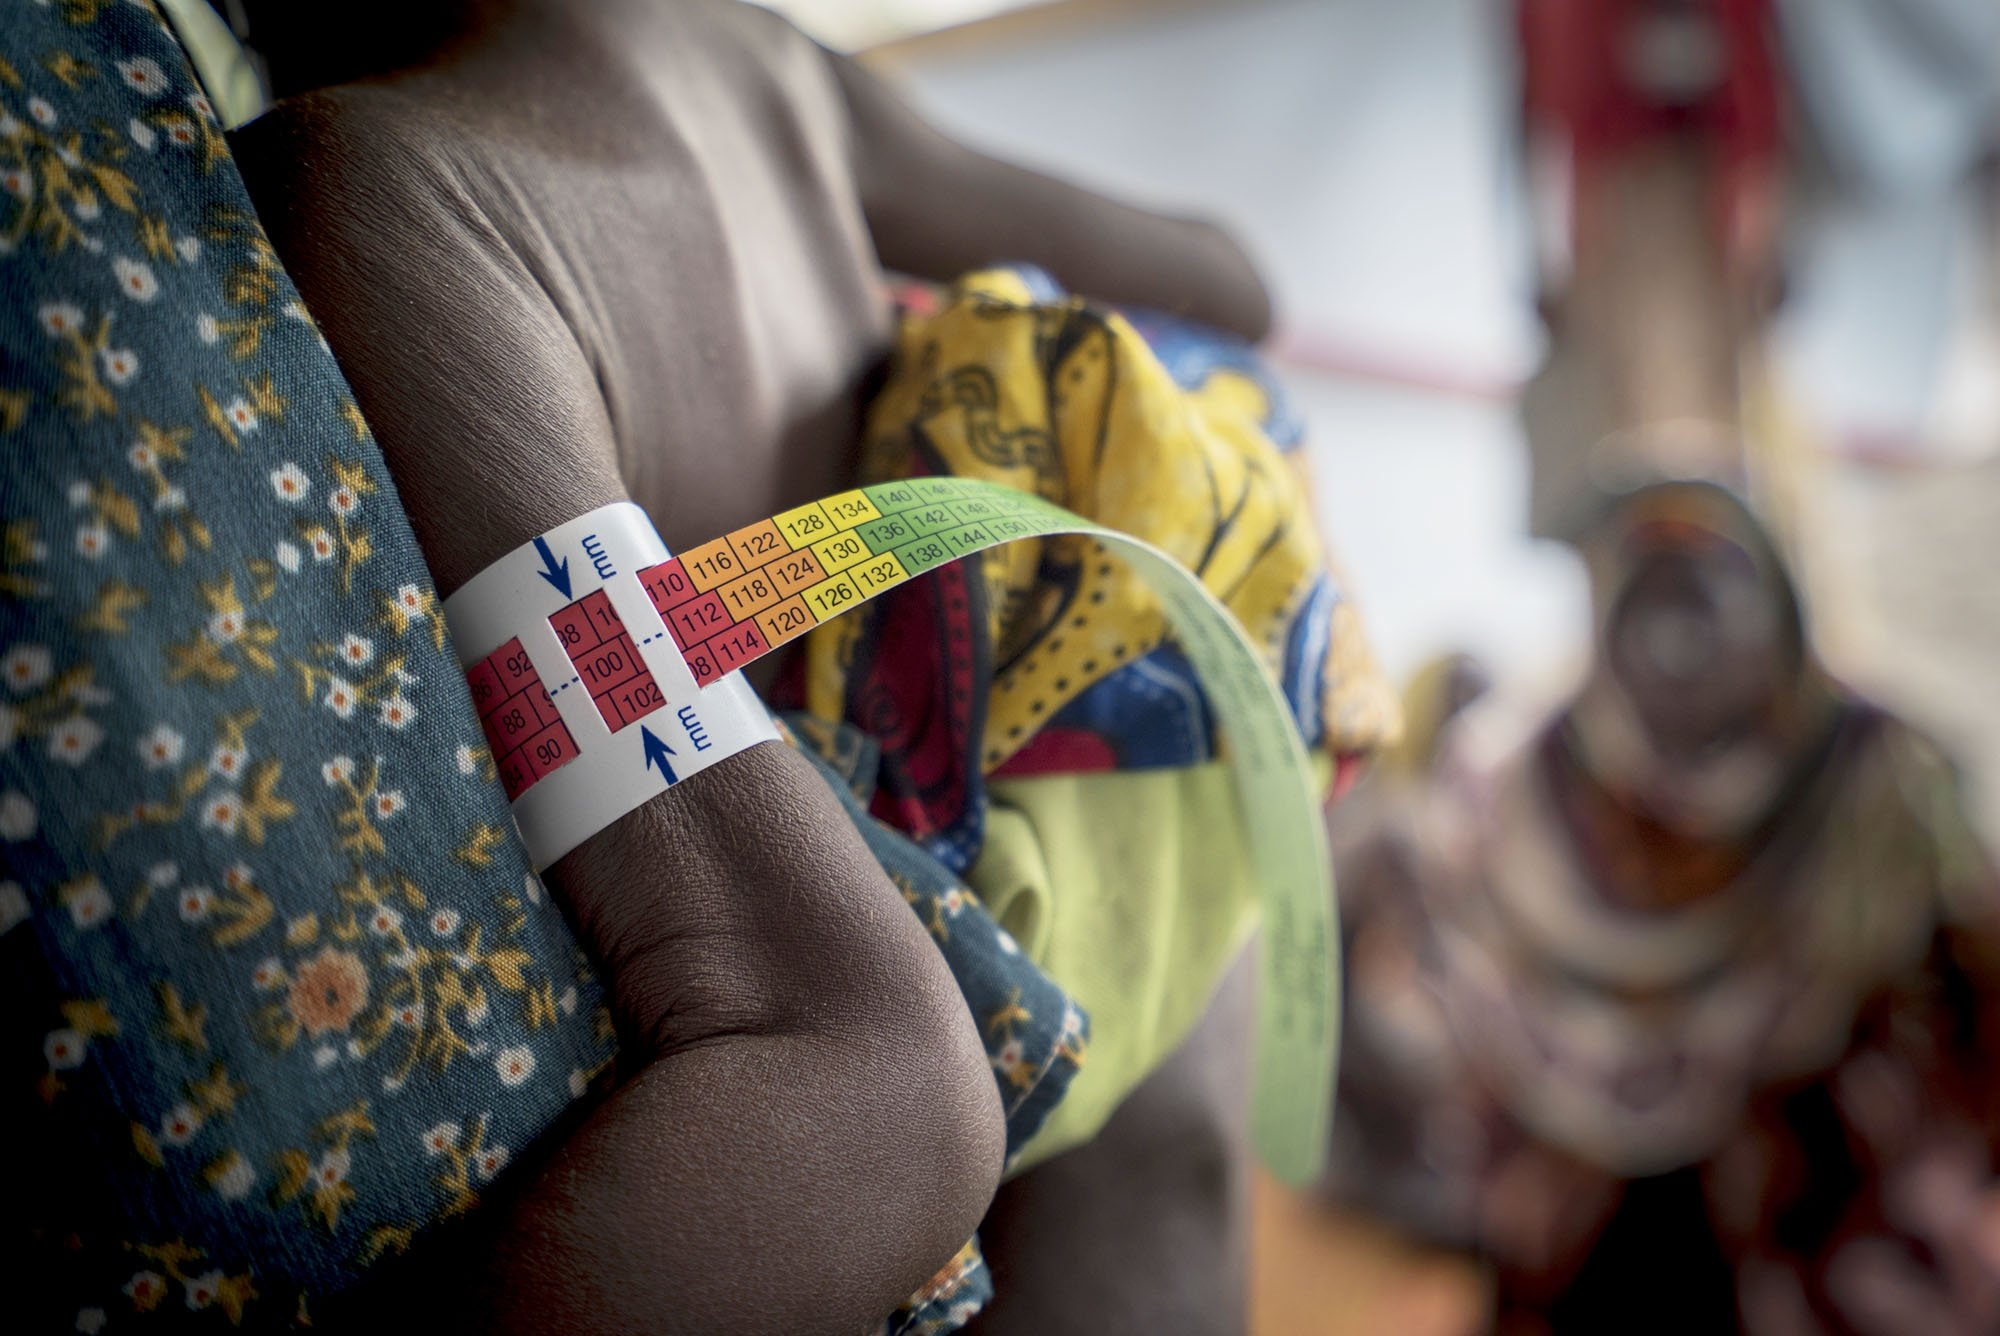 A malnourished child attends the MSF Abirebi ambulatory therapeutic feeding centre with his mother. The coloured band measures his mid-upper arm circumference and gives an indication of how well nourished he is. In this case, the red indicates the child suffers from severe and acute malnutrition. Photo: Ricardo Garcia Vilanova